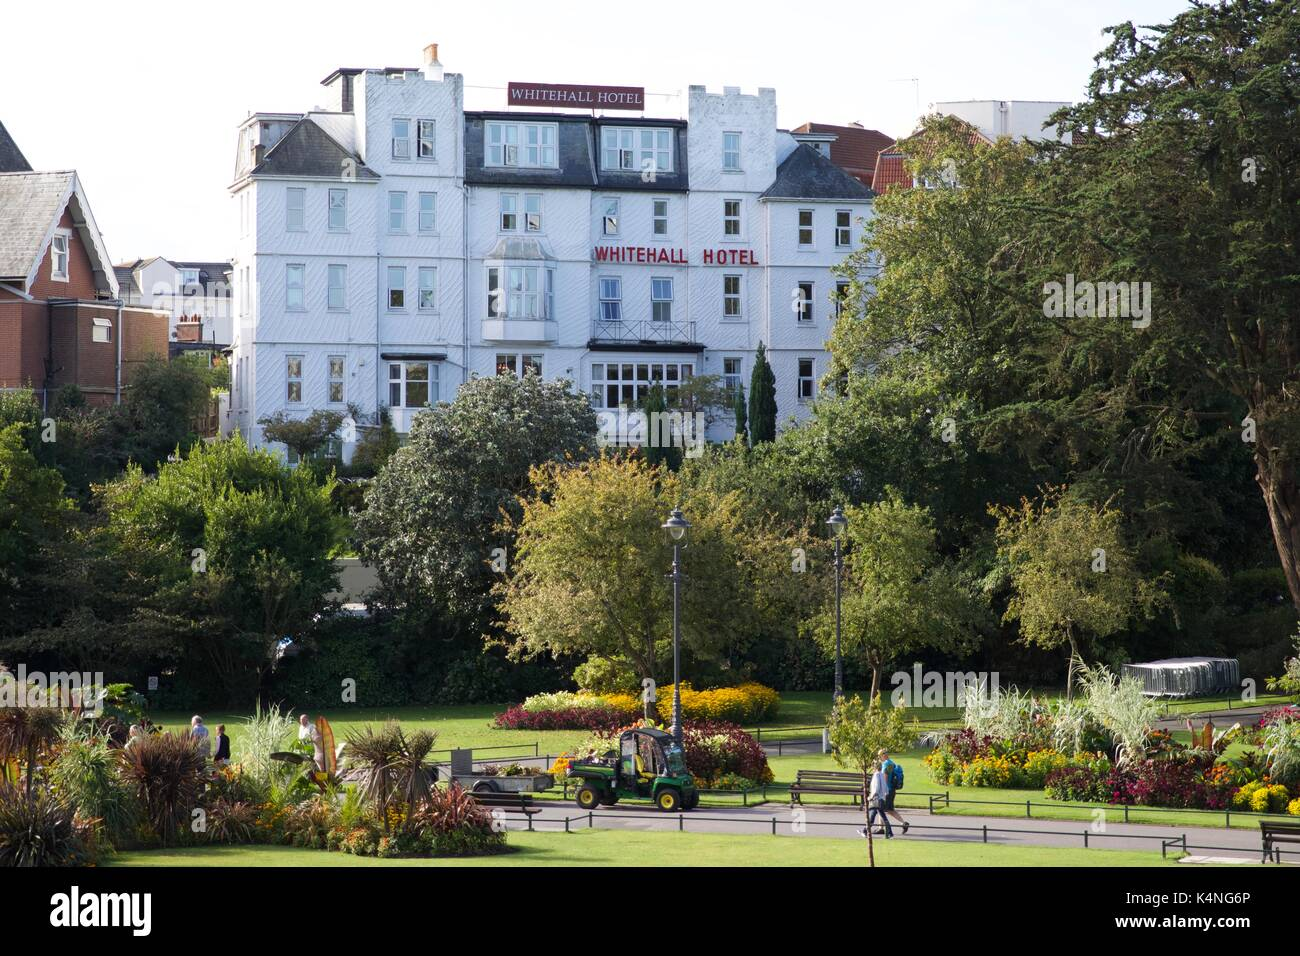 The Whitehall Hotel - Bournemouth - Stock Image